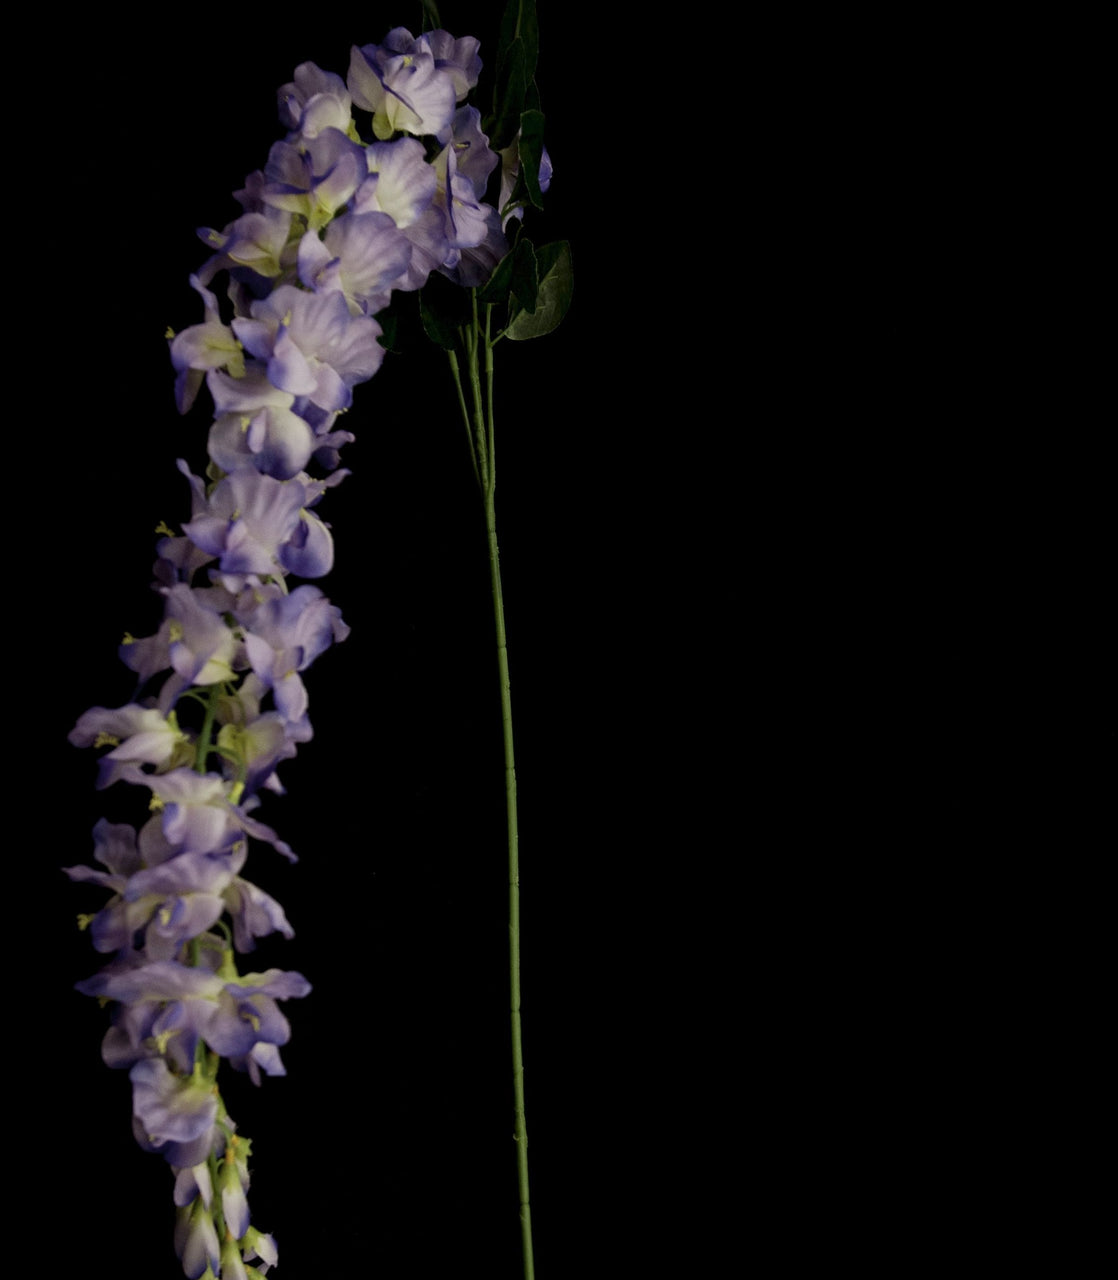 HCFL5309 - Purple Long Stem Wisteria